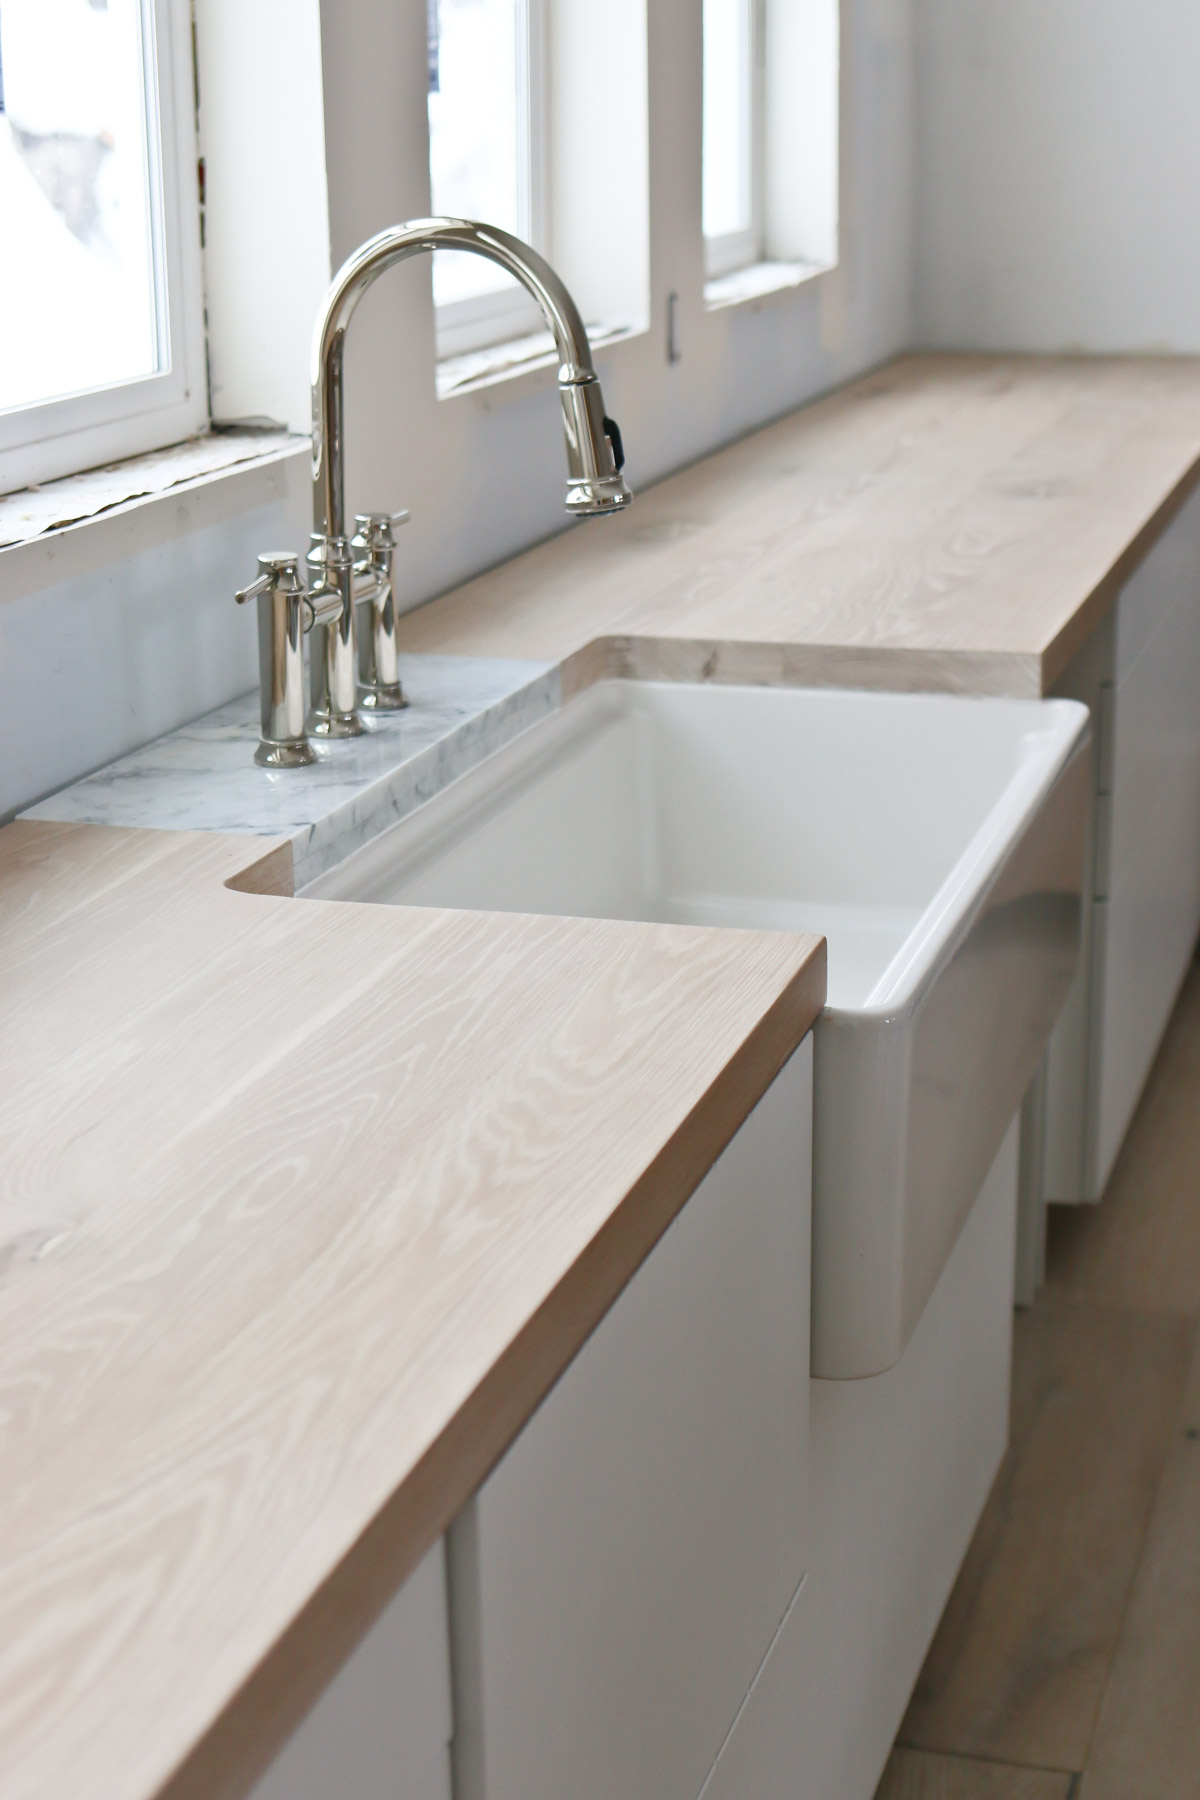 DIY Butcher Block Countertops - oh yes you can!